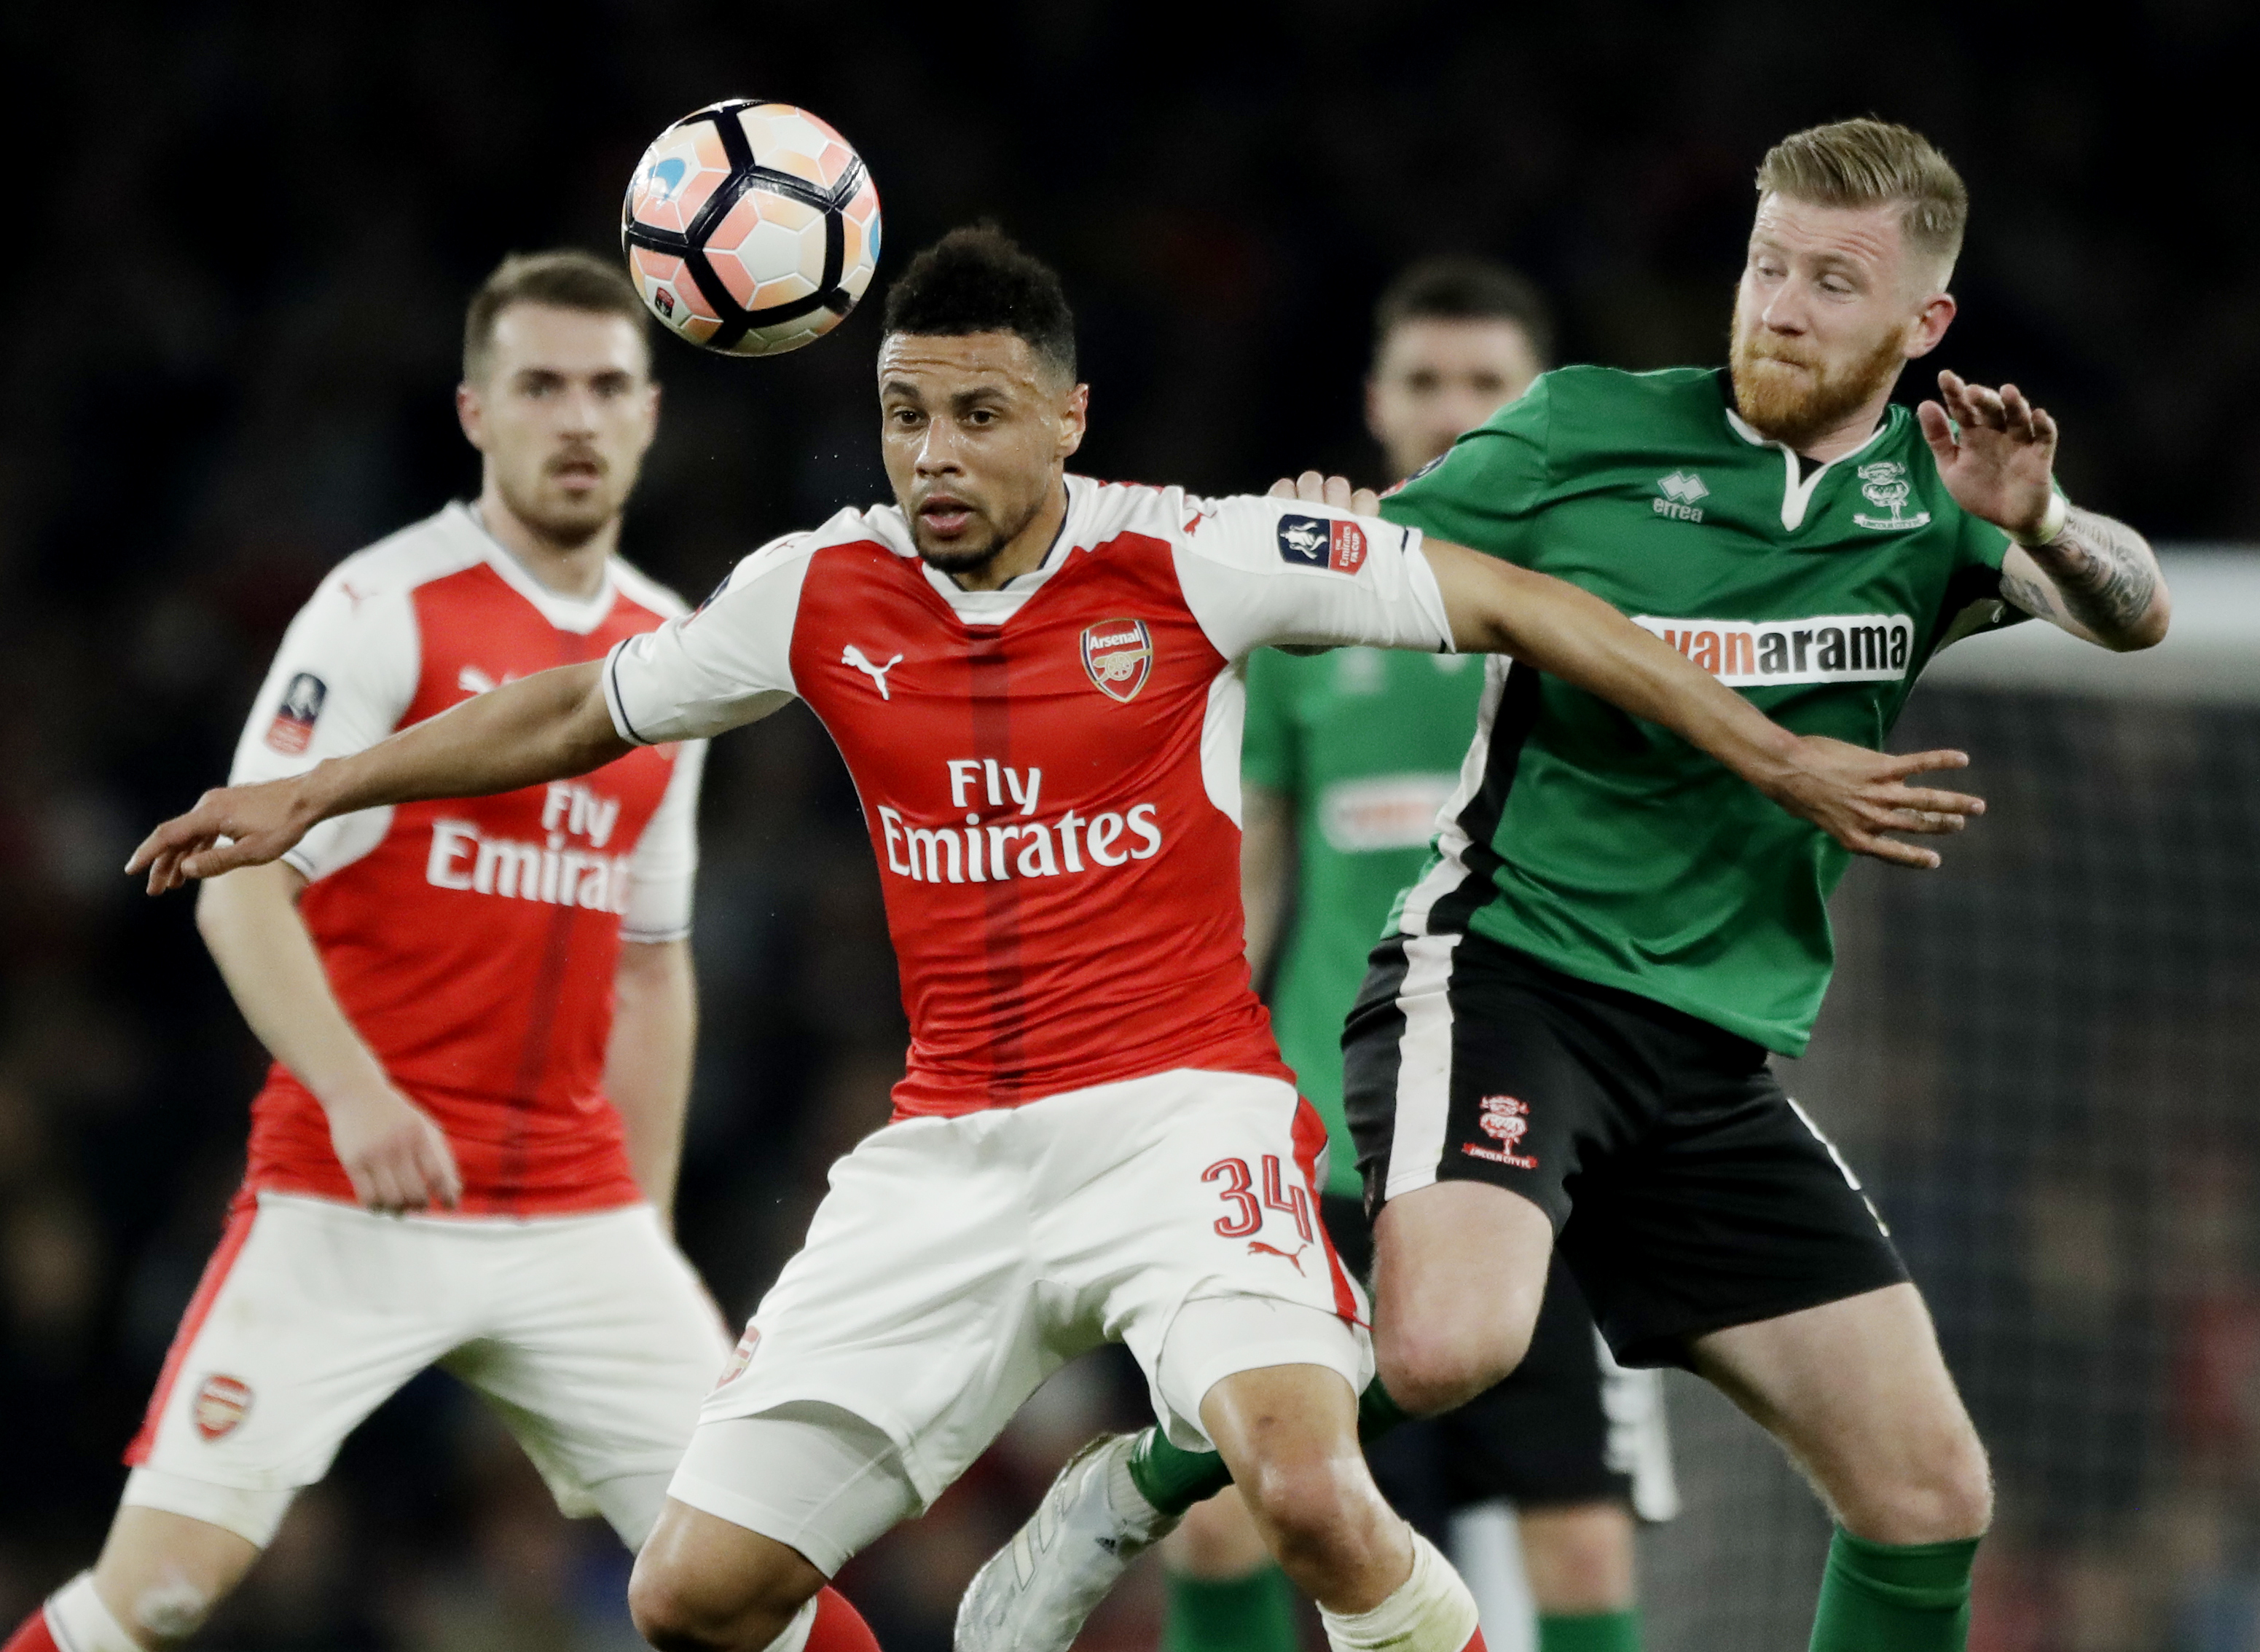 Arsenal's Francis Coquelin competes for the ball with Lincoln City's Alan Power, right, during their English FA Cup quarterfinal match at the Emirates stadium in London, Saturday, March 11. (AP Photo/Matt Dunham)